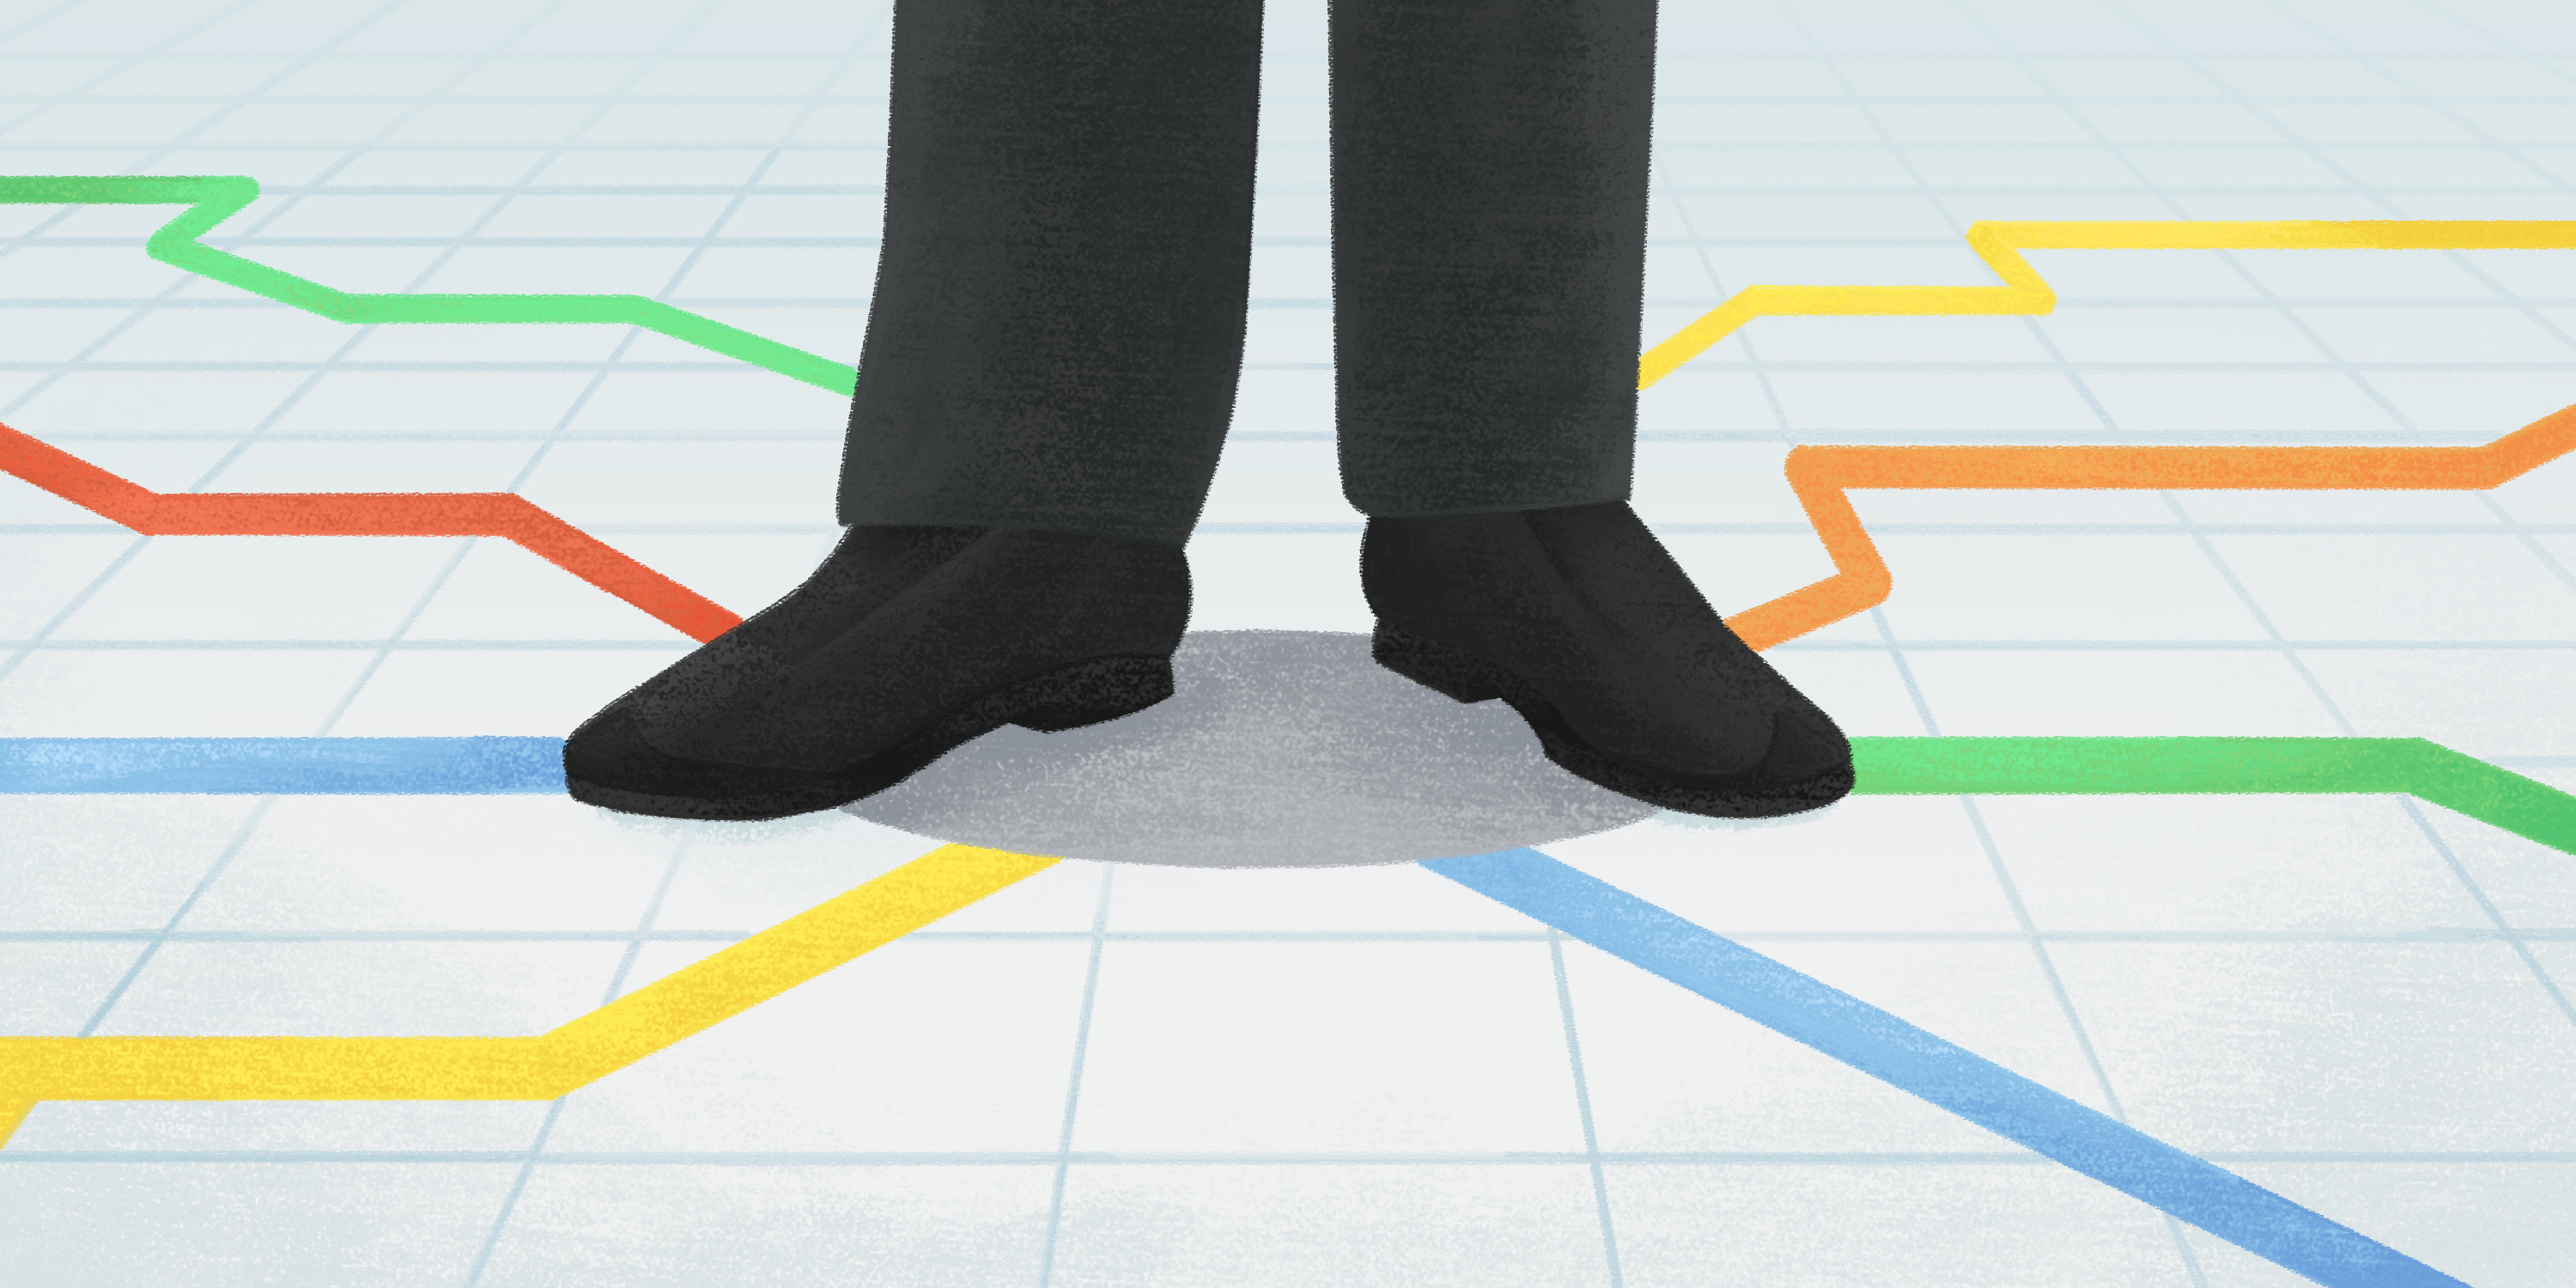 CFO stands at a crossroads with multiple paths to choose from